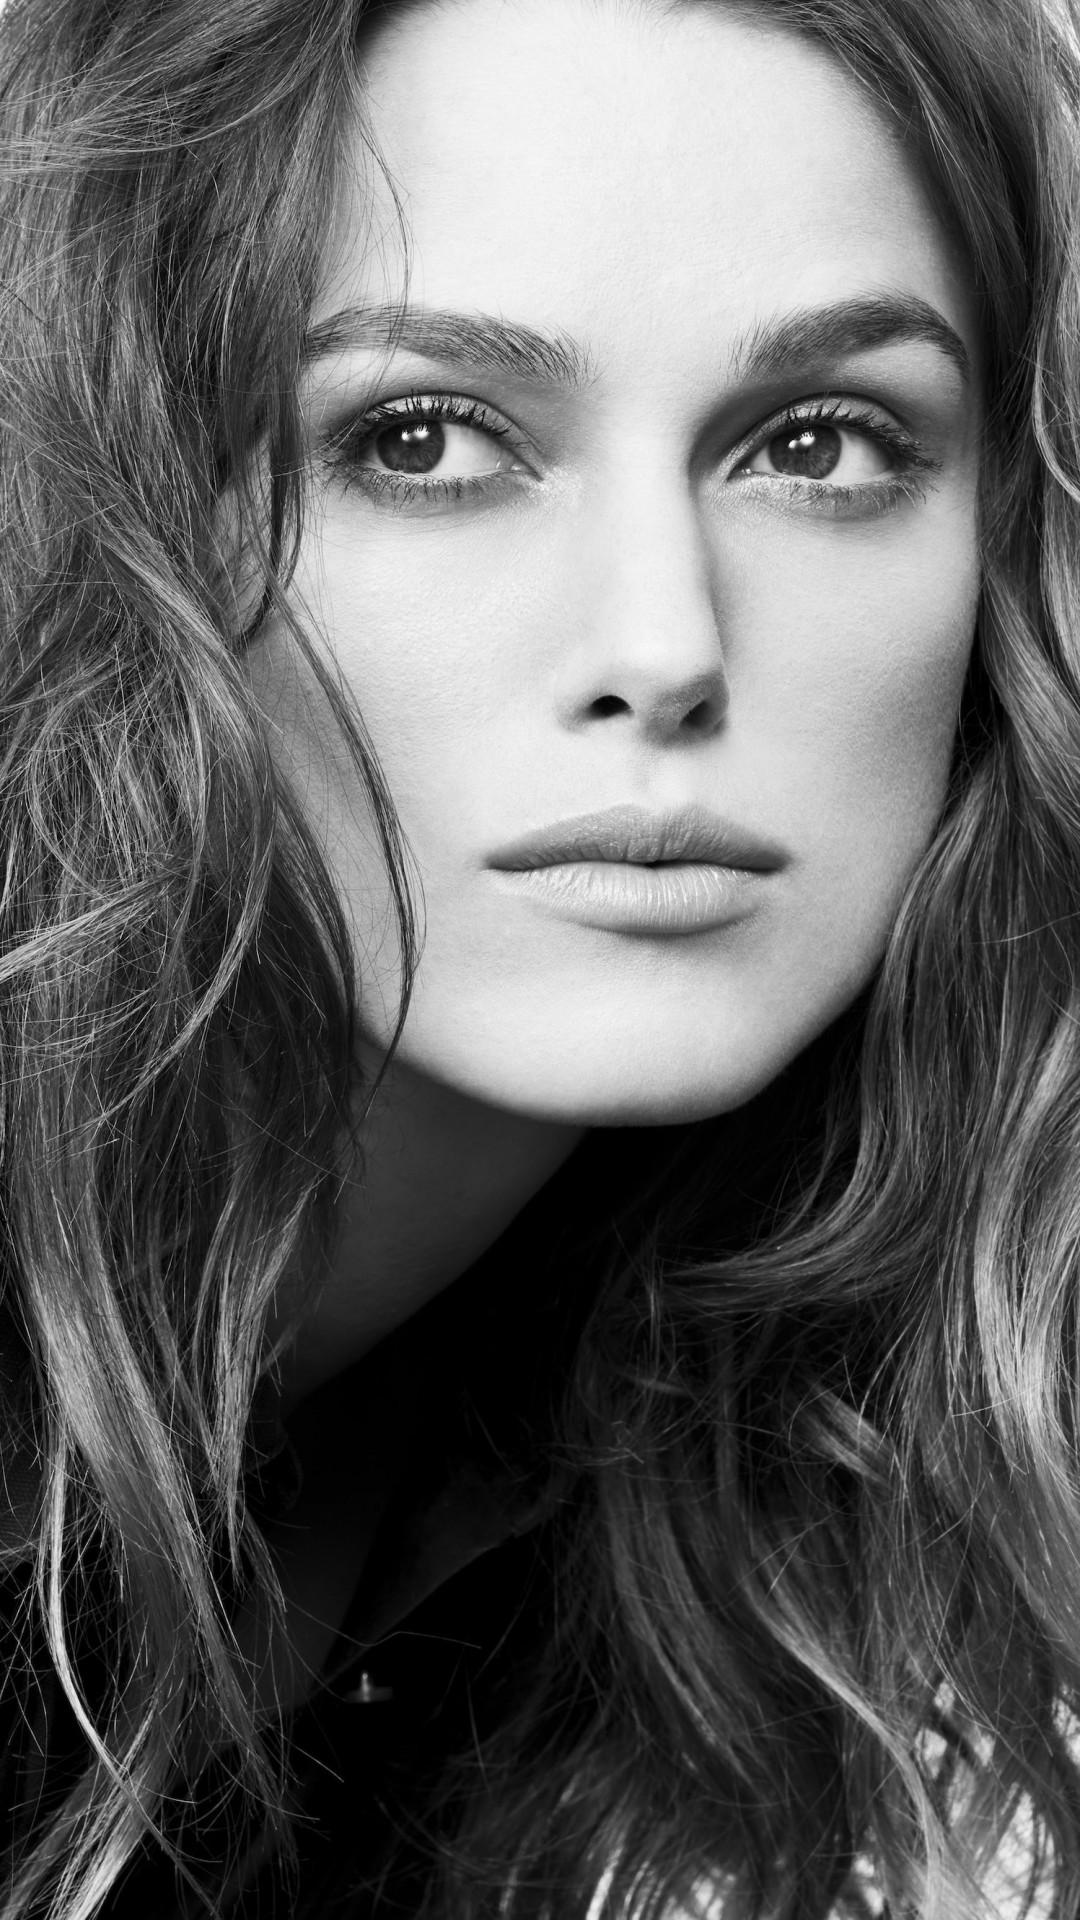 Keira Knightley in Black & White Wallpaper for SAMSUNG Galaxy S4